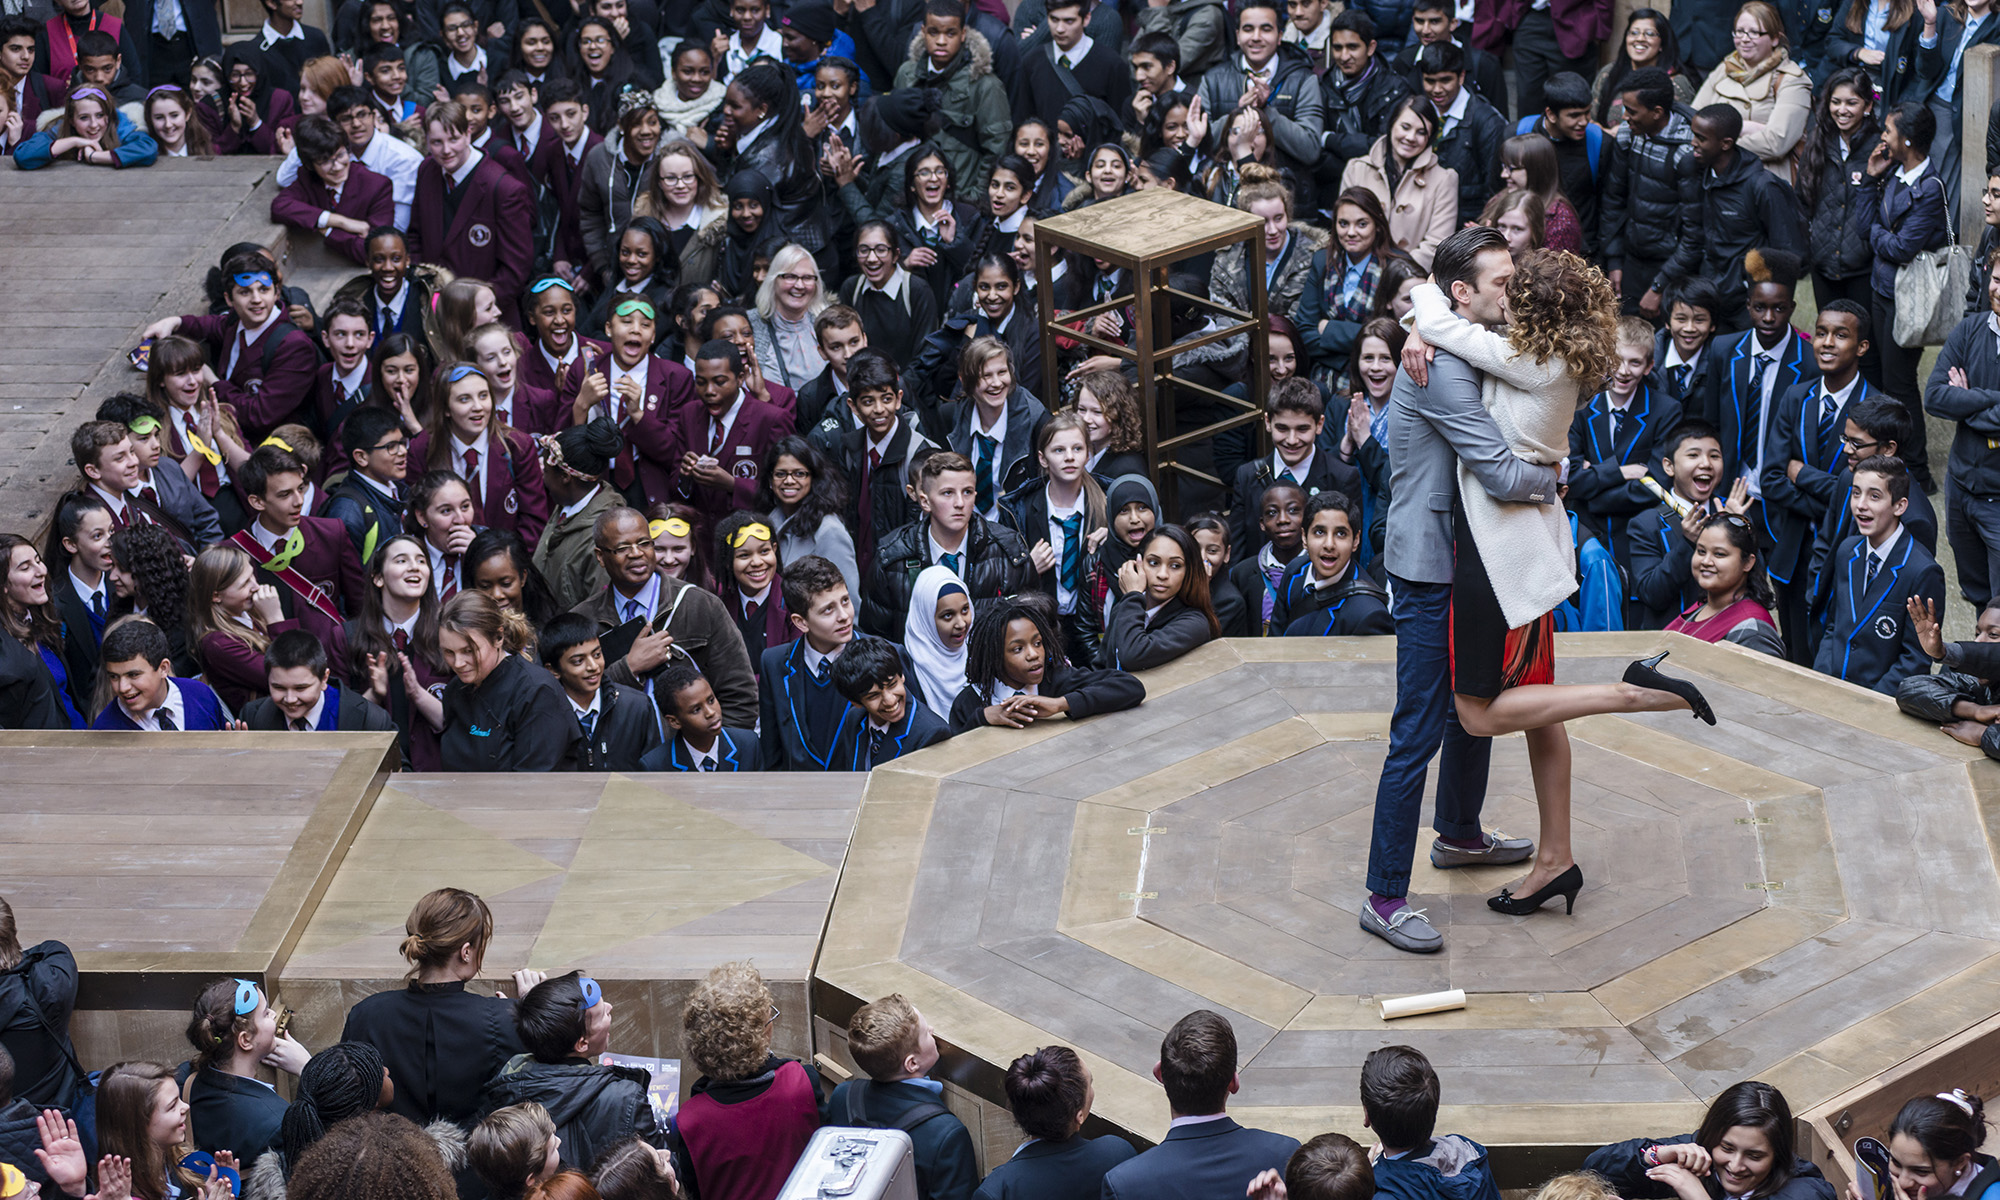 Two actors kiss on stage, on a platform that extends into the audience in the yard